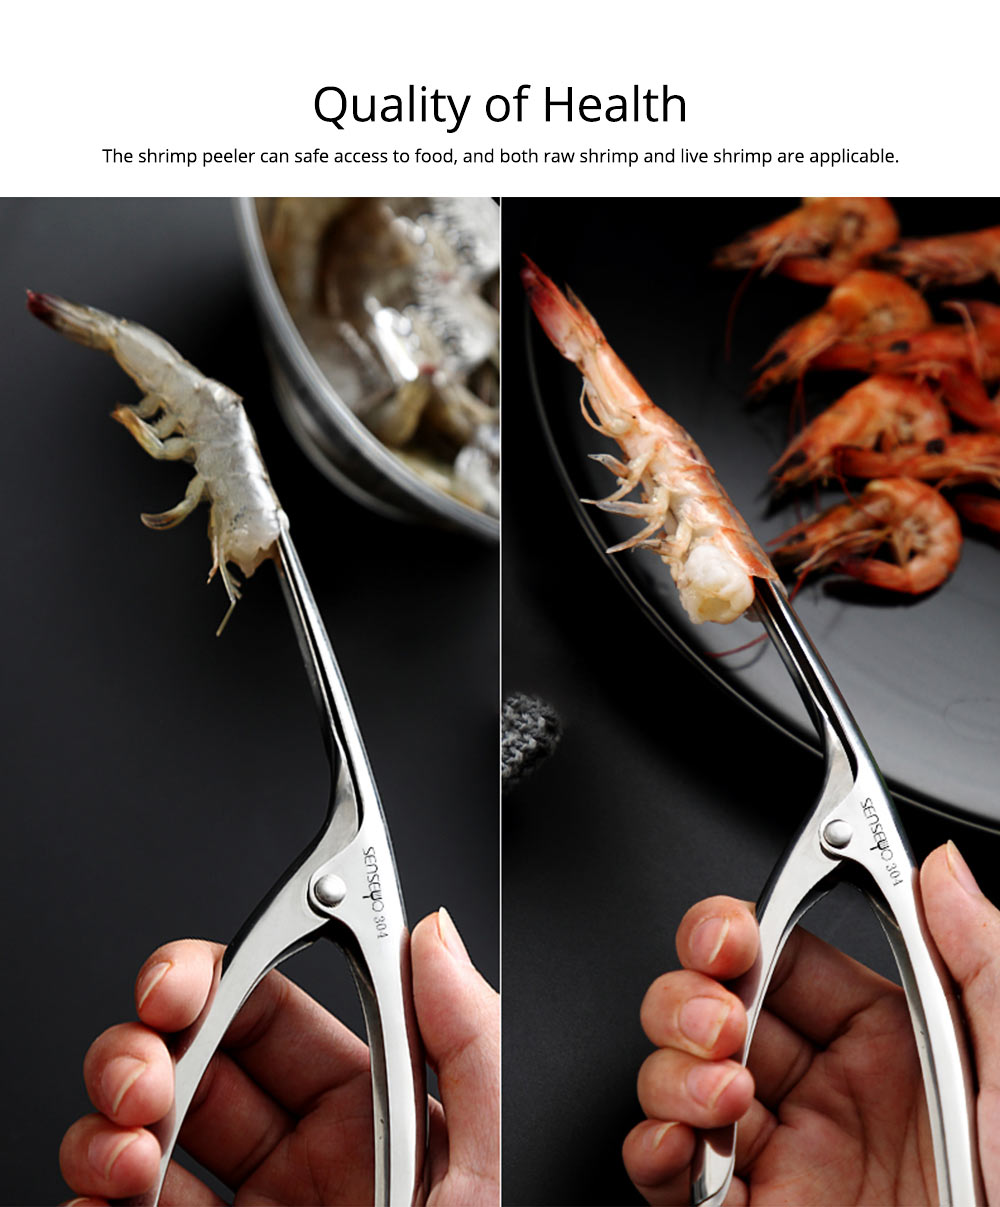 304 Stainless Steel Prawn Peeler Shrimp Peel Device Creative Kitchen Tools for Household Simple Operation Corrosion Resistance Shrimp stripper 5